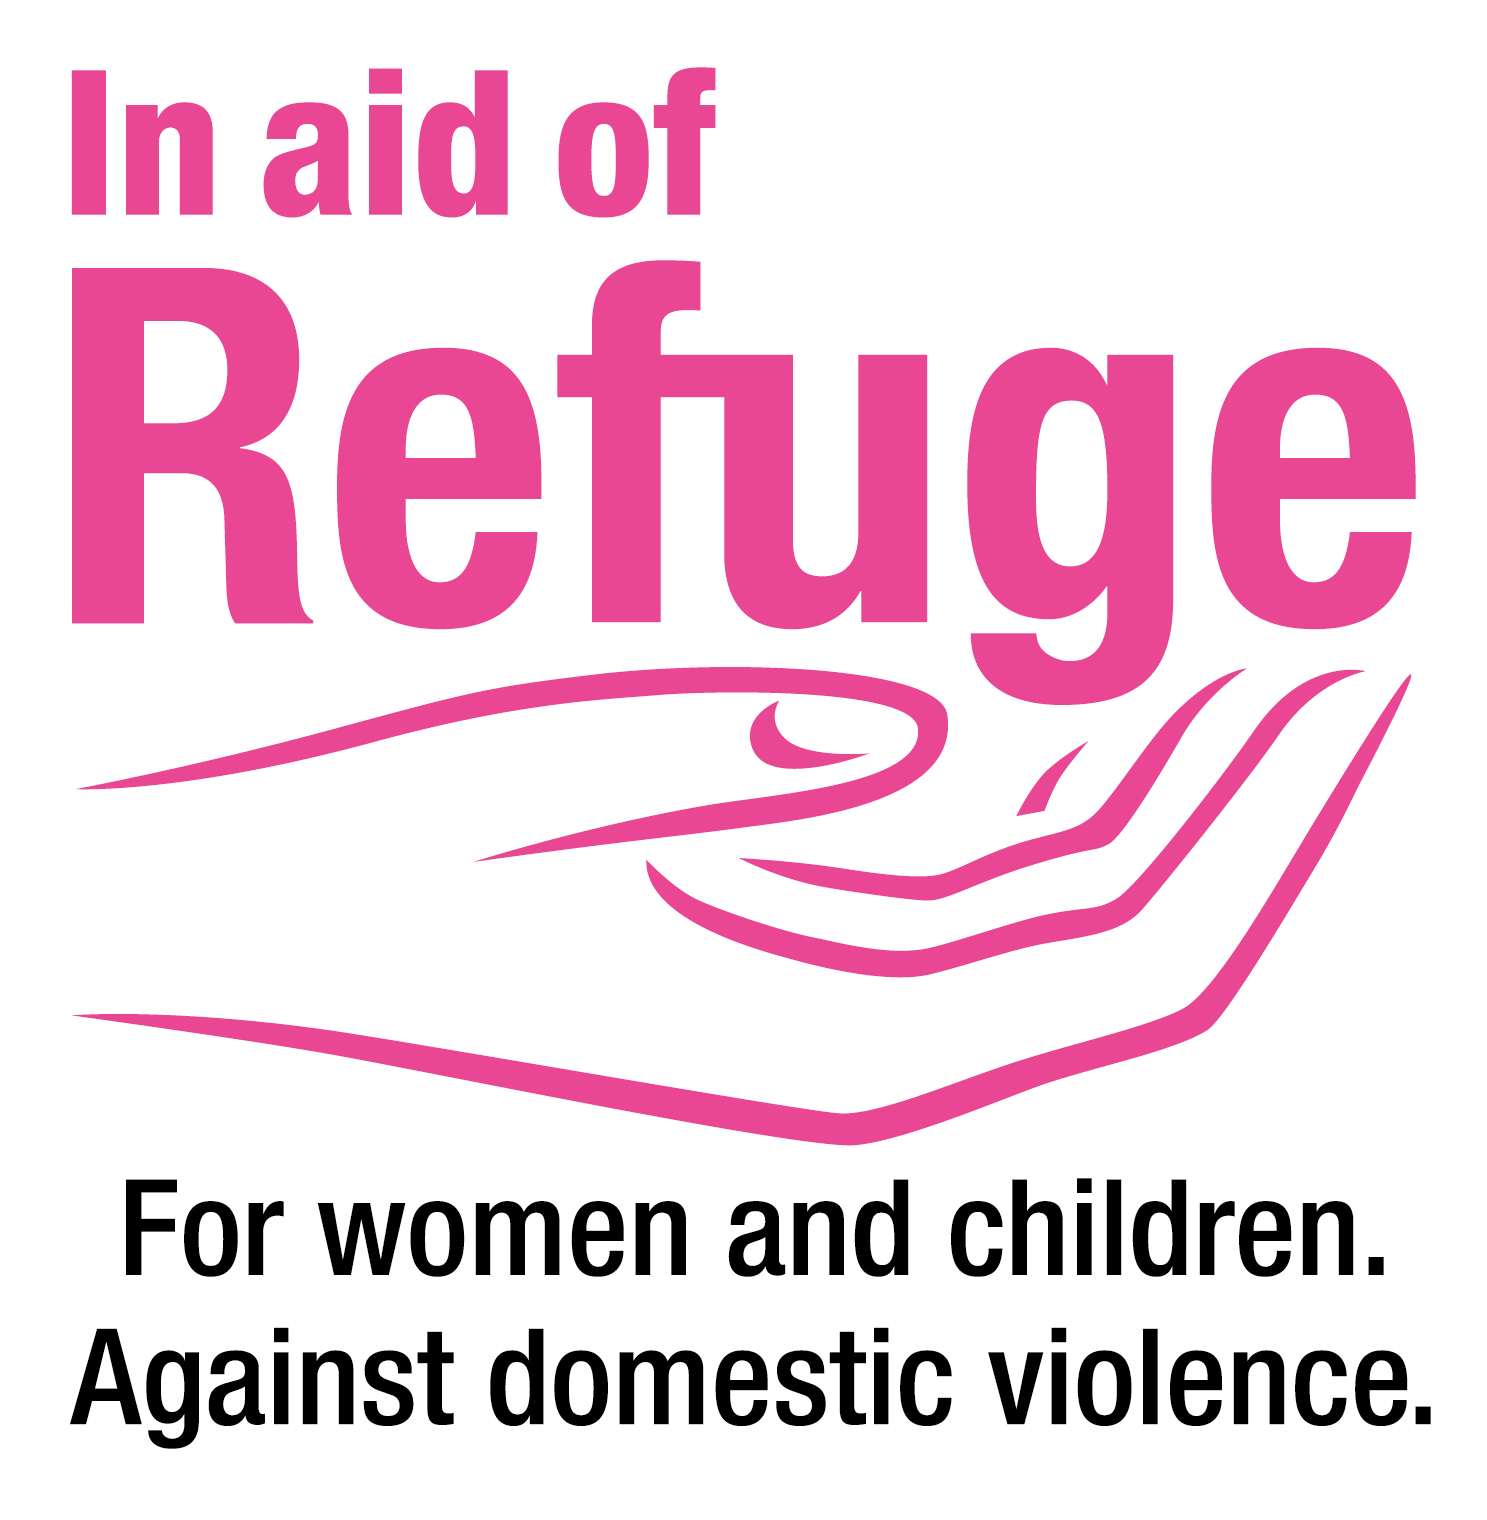 """Image of Refuge logo. A pink hand with the text """"For women and children against domestic violence"""""""